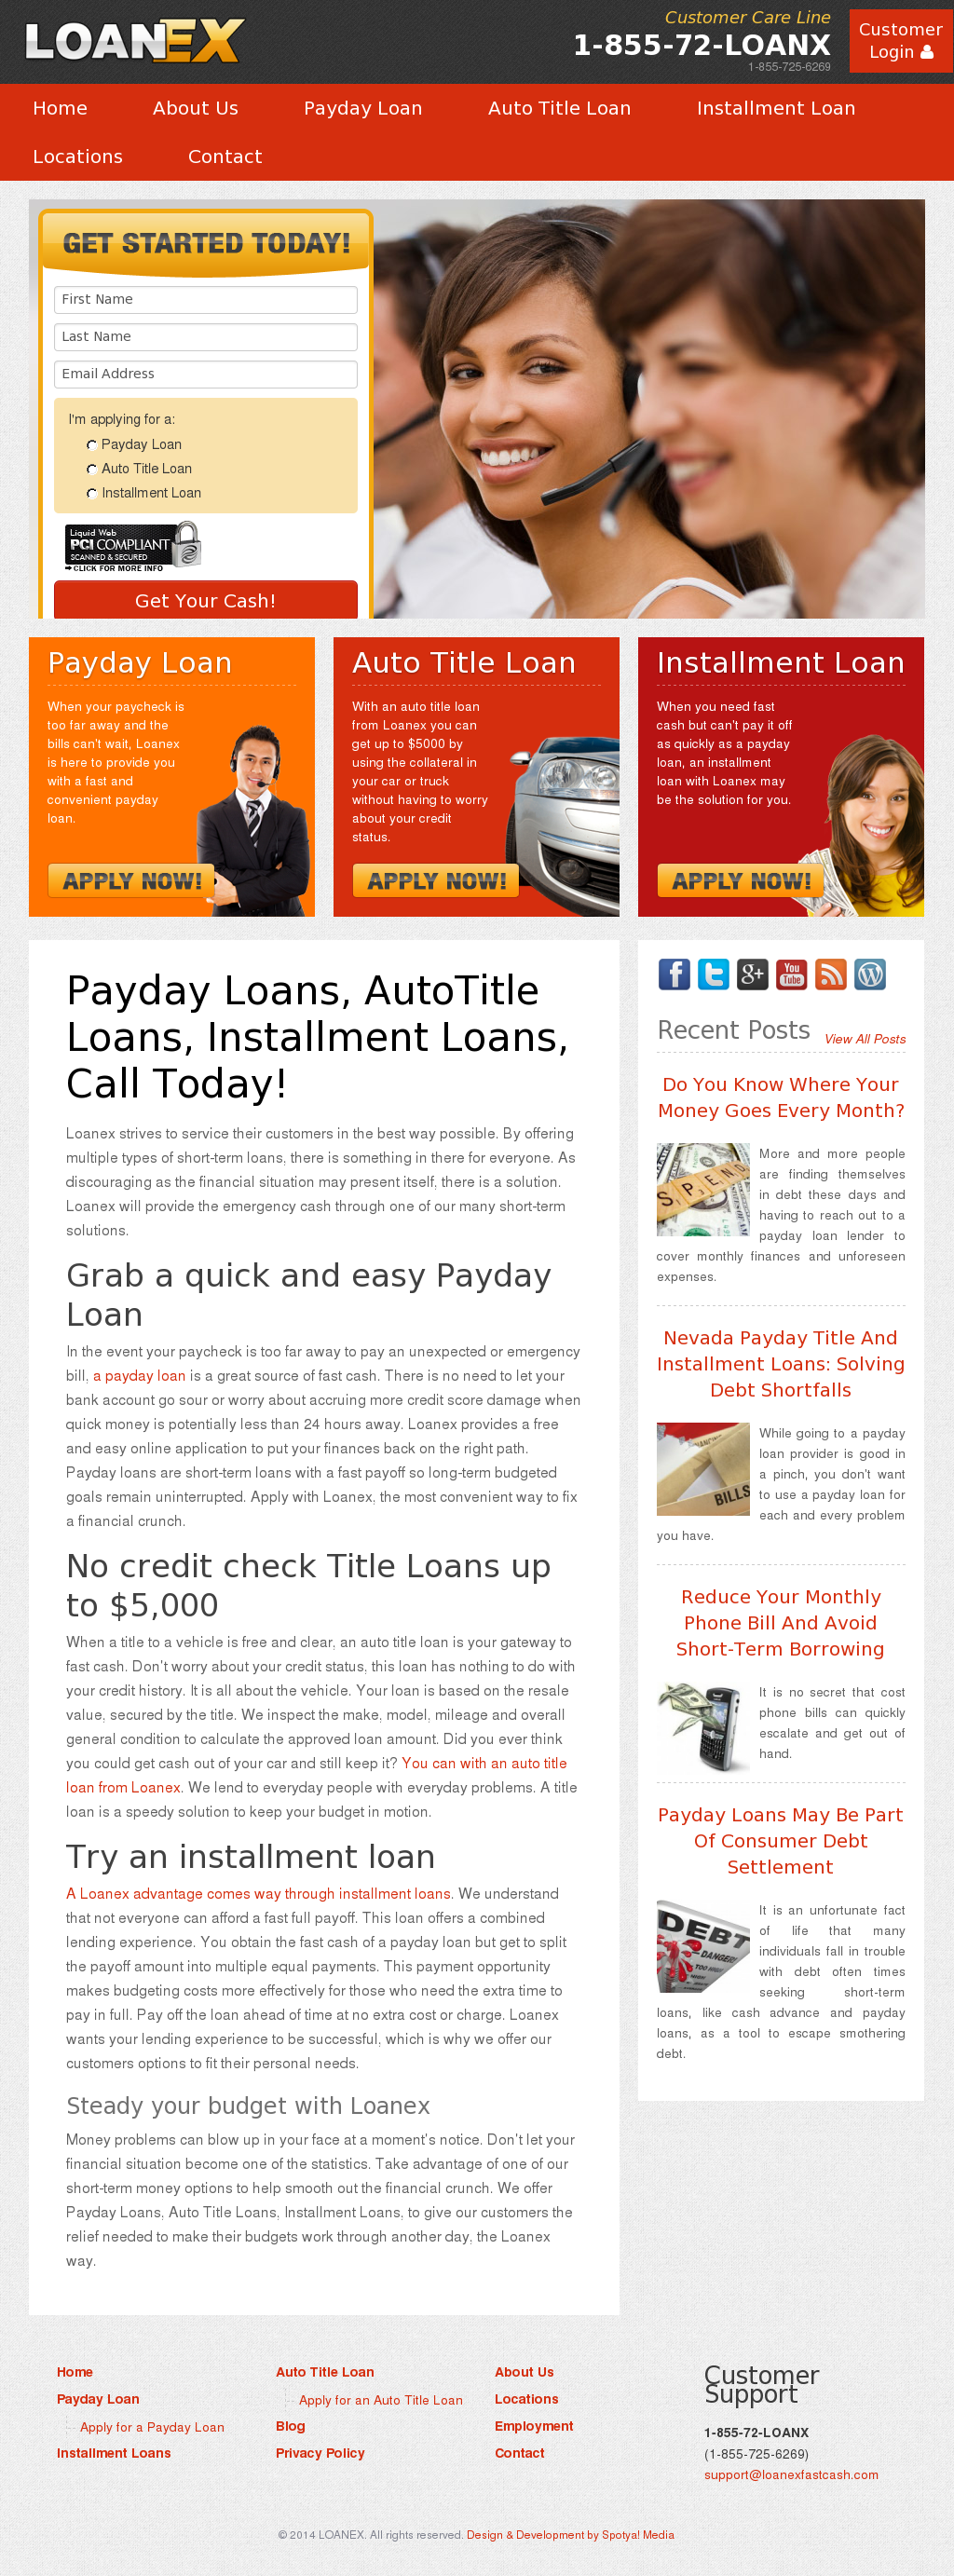 Same day cash loans unemployed bad credit photo 2